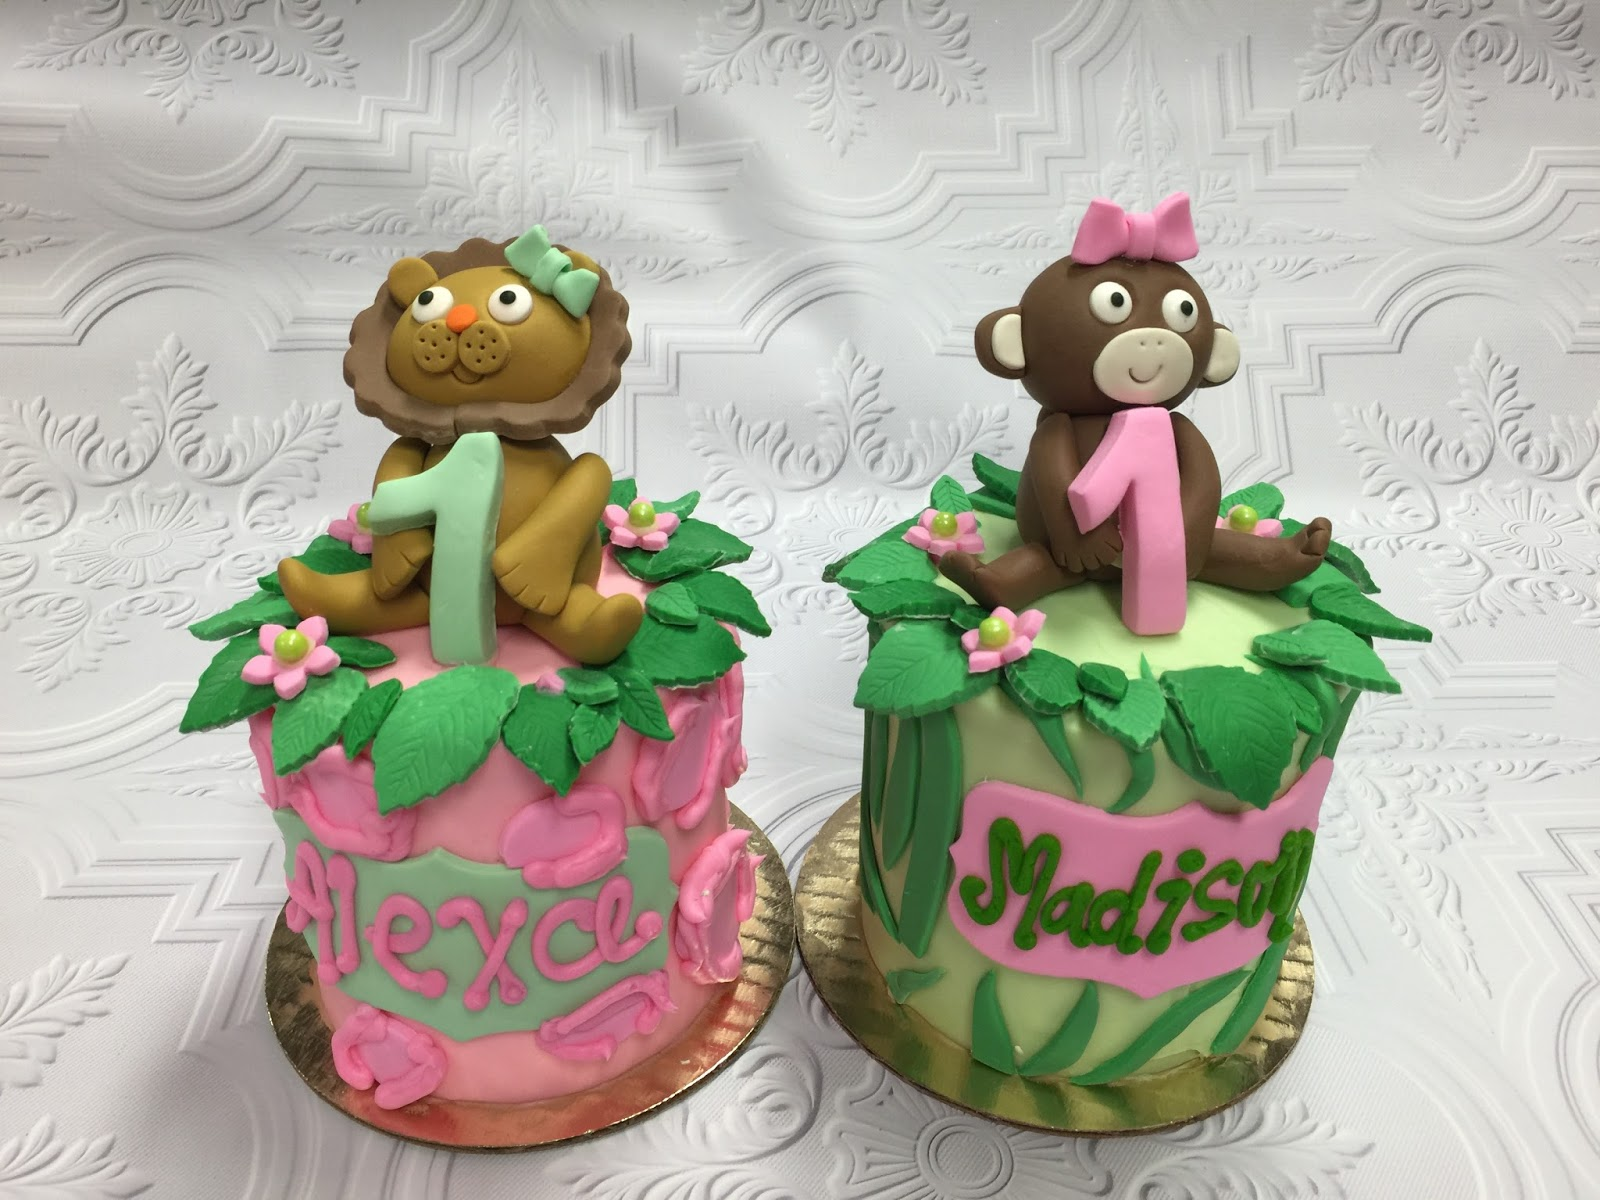 Owner And Cake Artist : Leah s Sweet Treats: Custom Cakes at Leah s Sweet Treats ...